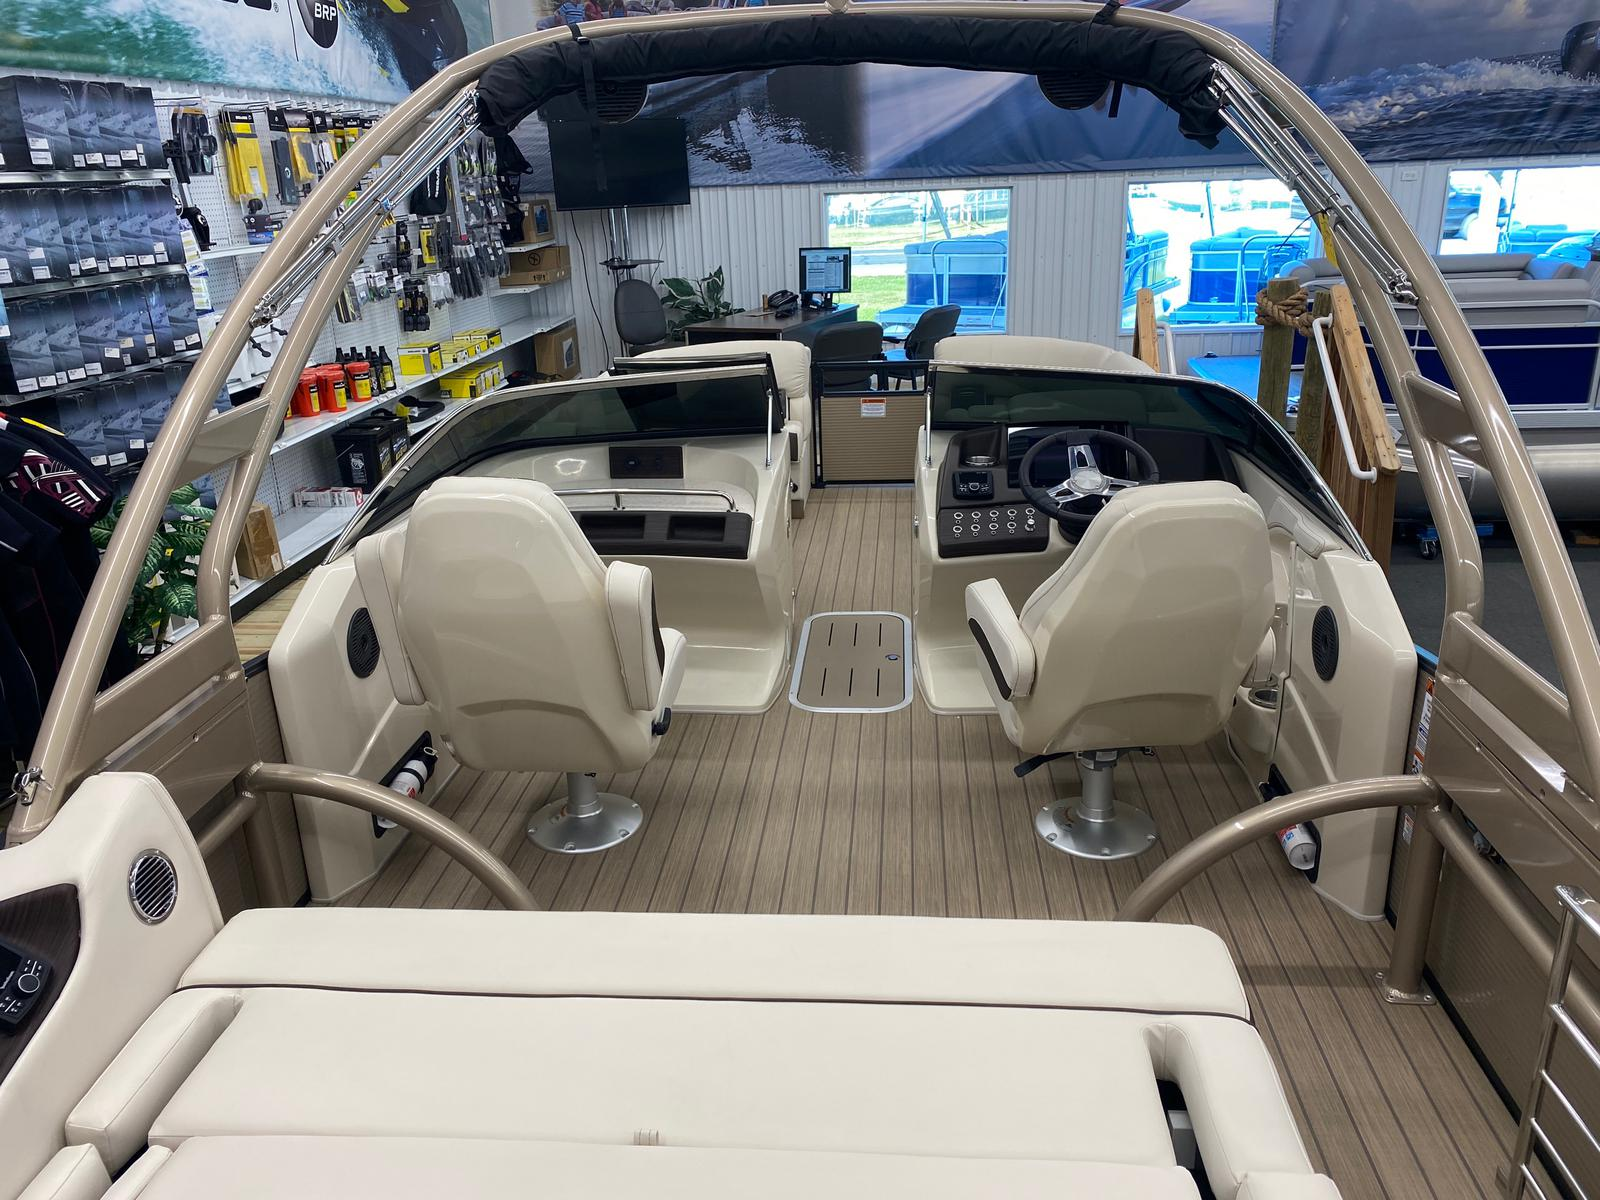 2021 Bennington boat for sale, model of the boat is 23 RSBWA WSHLD DLX Fold Open SP Arch Tri-Toon ESP Package & Image # 7 of 25